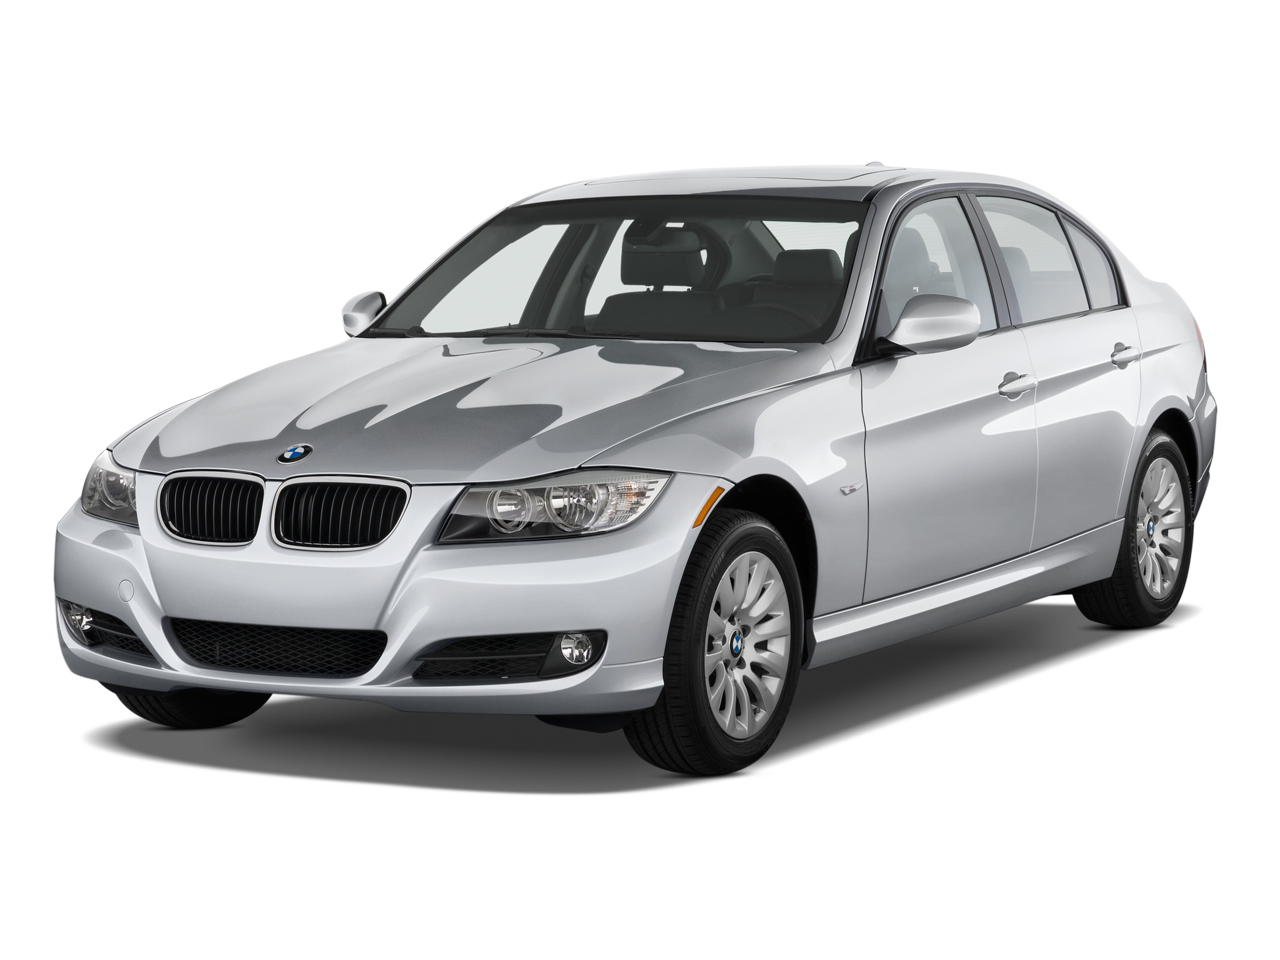 2010 Bmw 3 Series Review Ratings Specs Prices And Photos